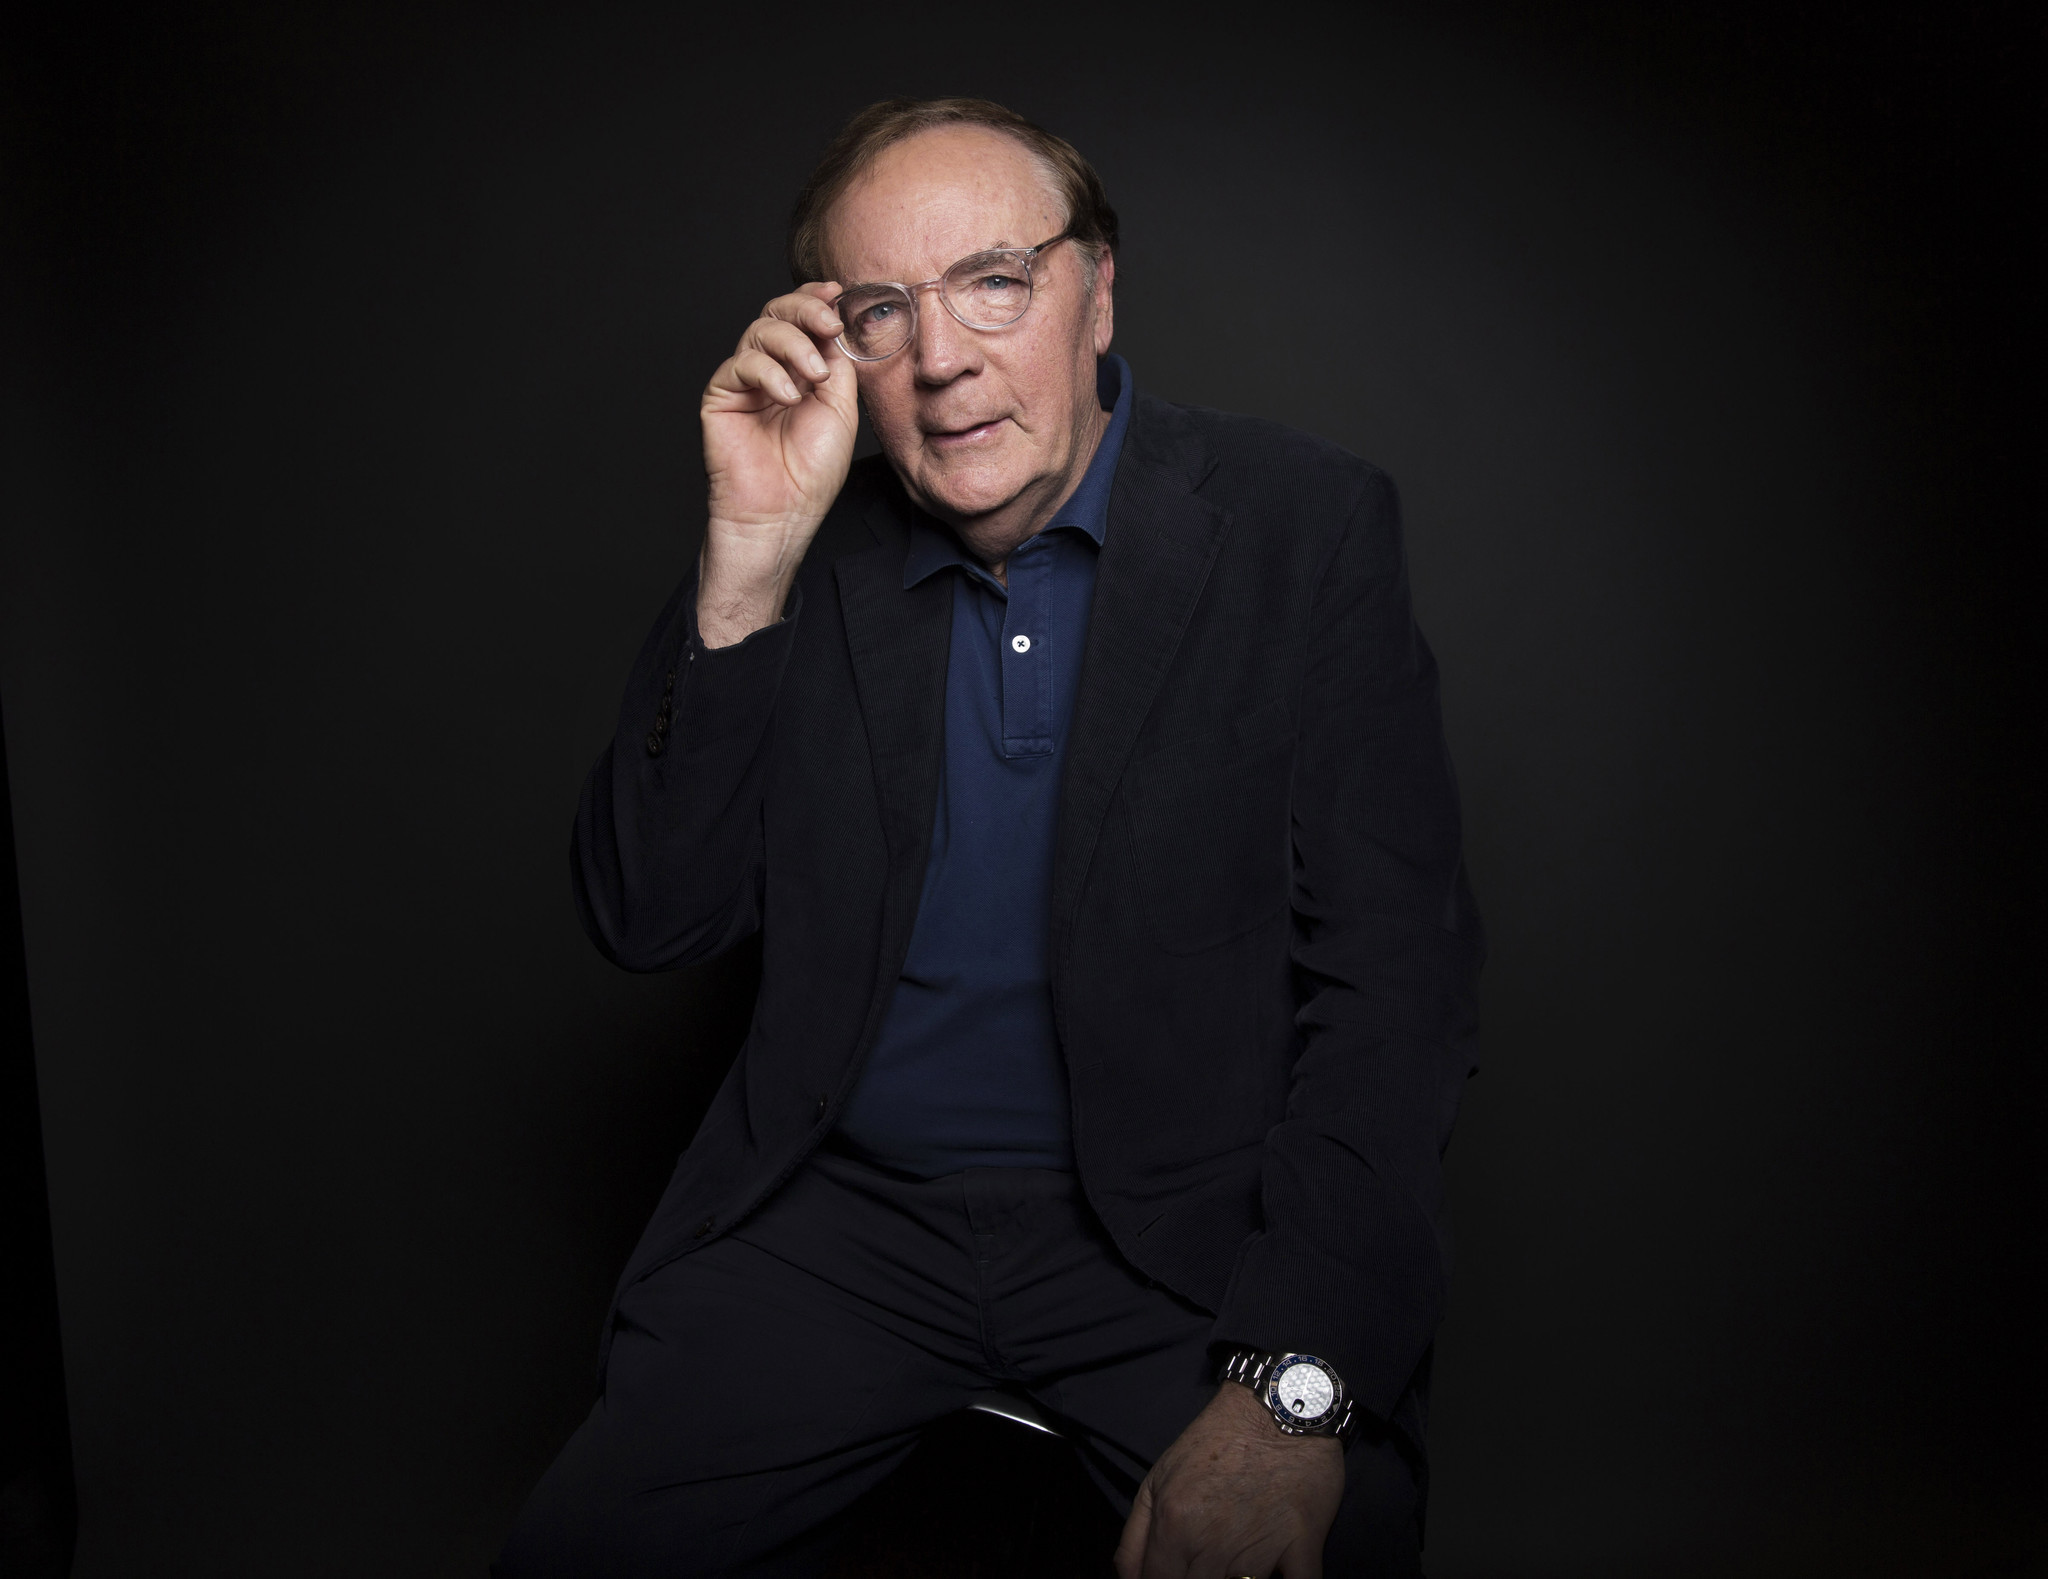 James Patterson donating $500,000 to help independent booksellers amid coronavirus